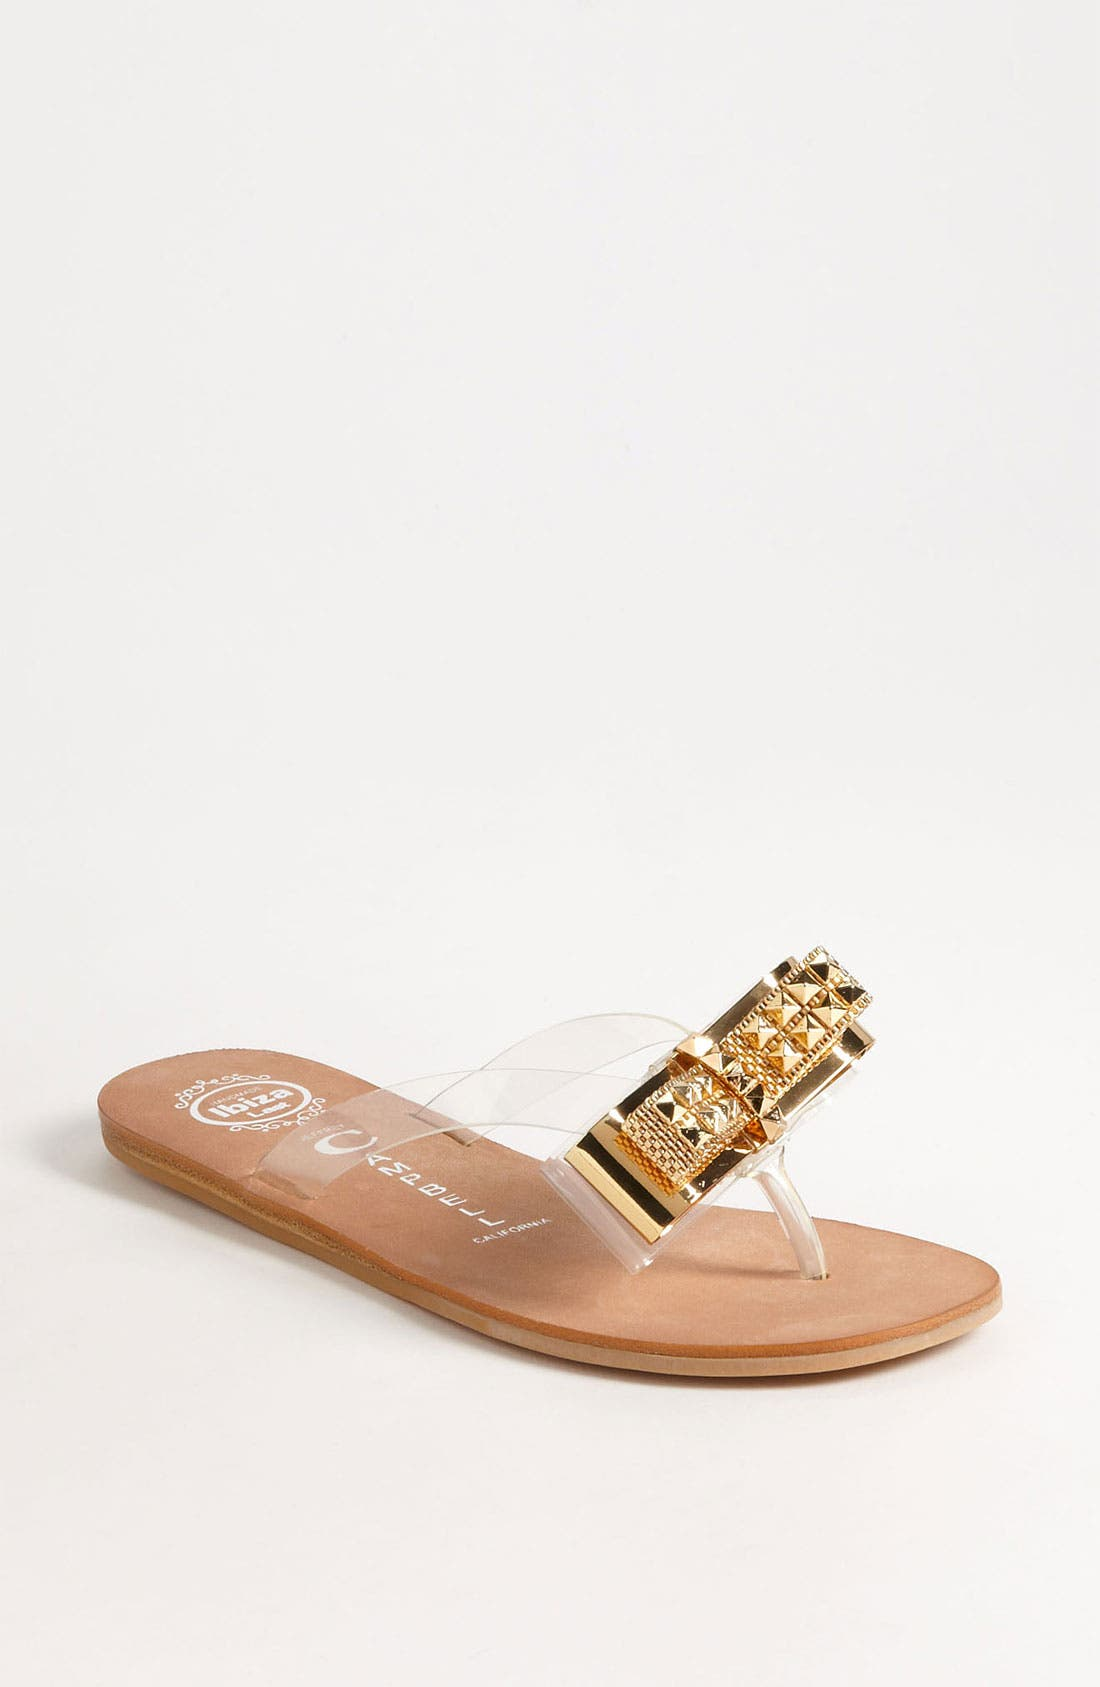 Alternate Image 1 Selected - Jeffrey Campbell 'Esme' Sandal